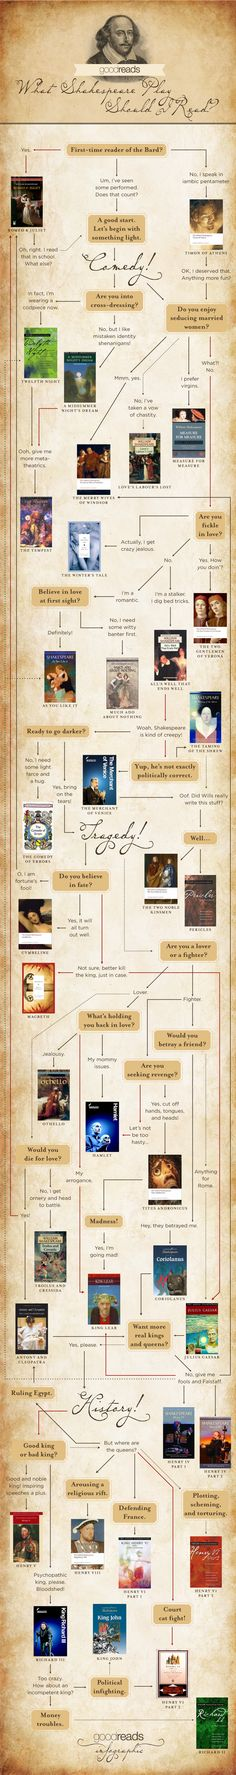 """""""What Shakespeare Play Should I Read?"""" a Goodreads infographic"""